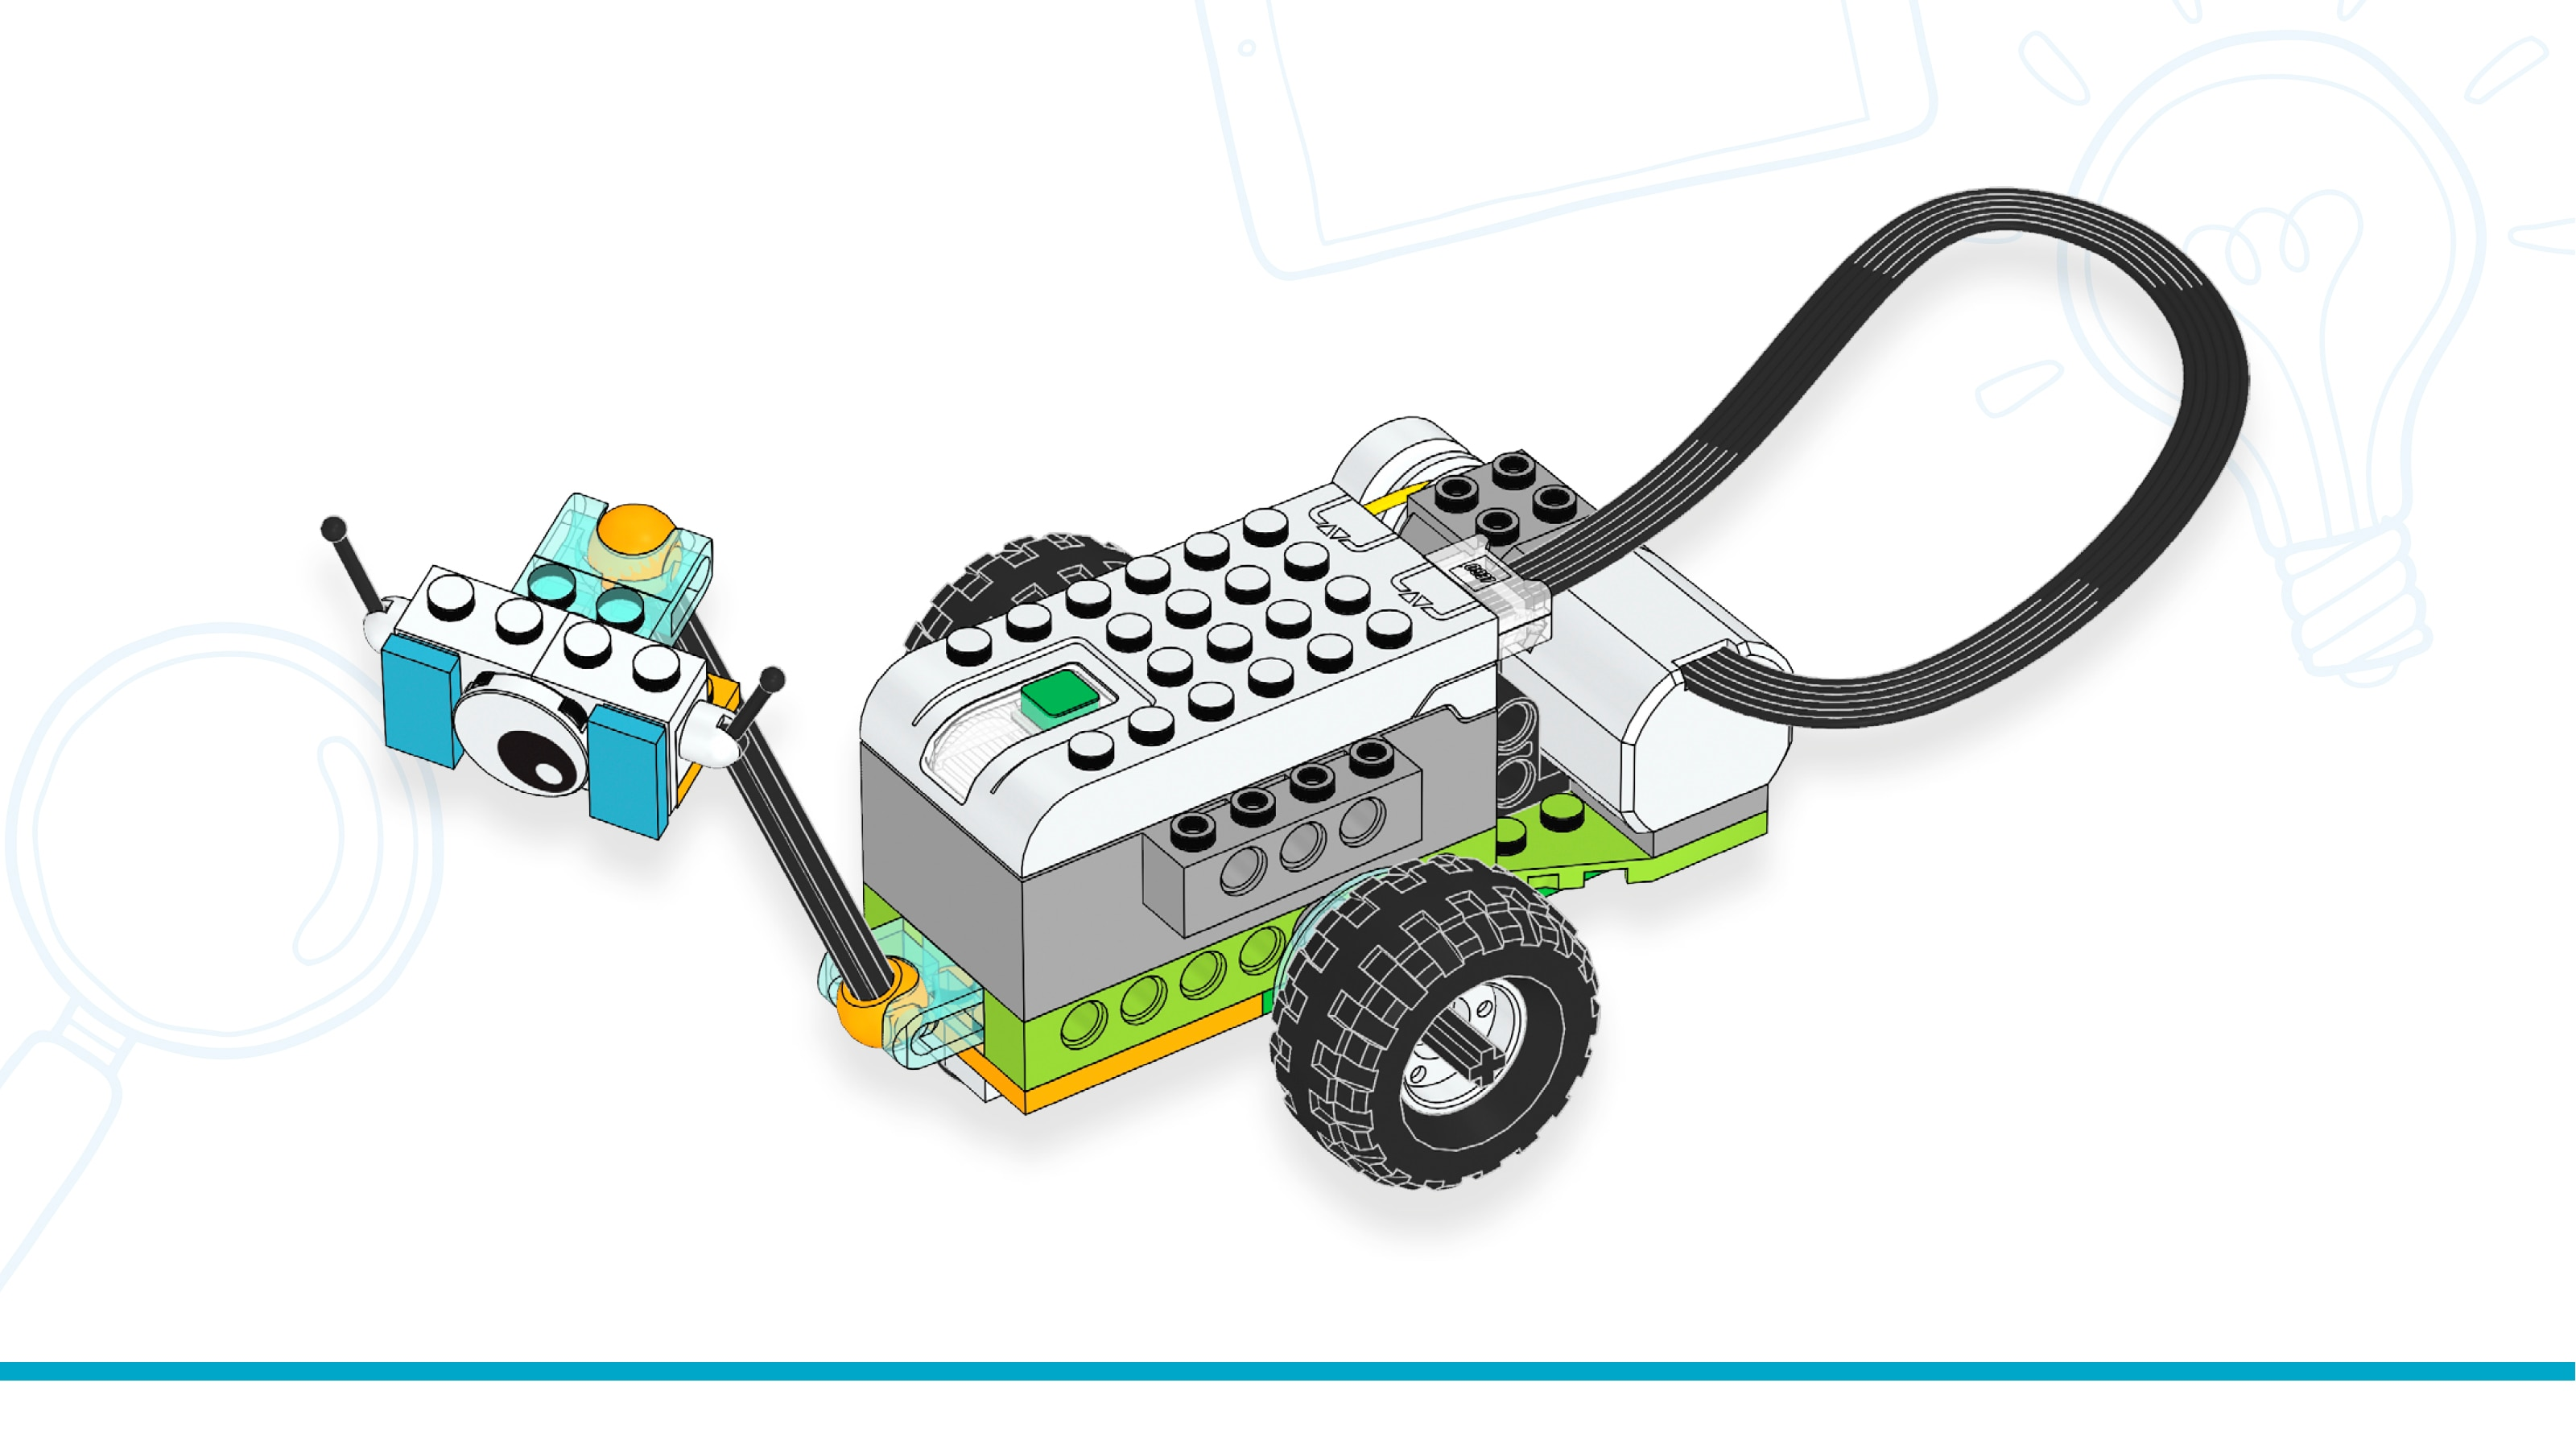 Wedo 20 Building Instructions Support Lego Education